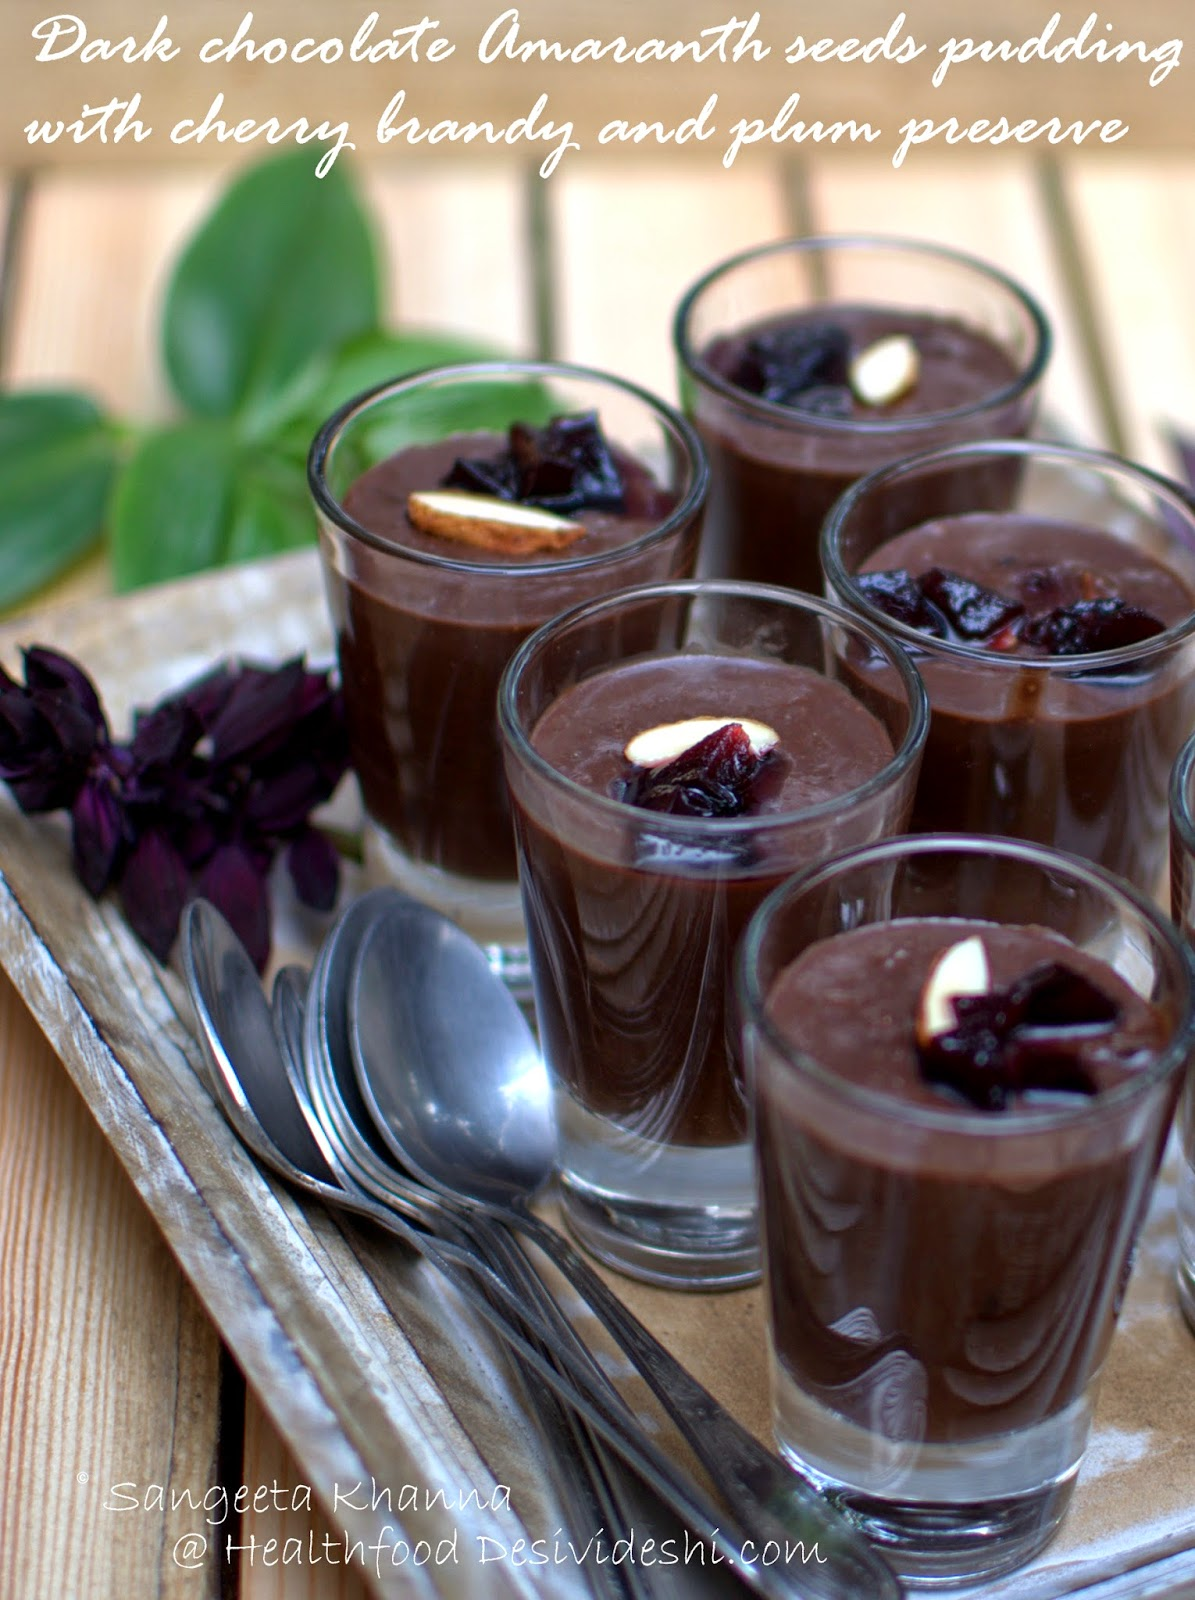 gluten free dark chocolate pudding with amaranth, balsamic plums preserve and cherry brandy